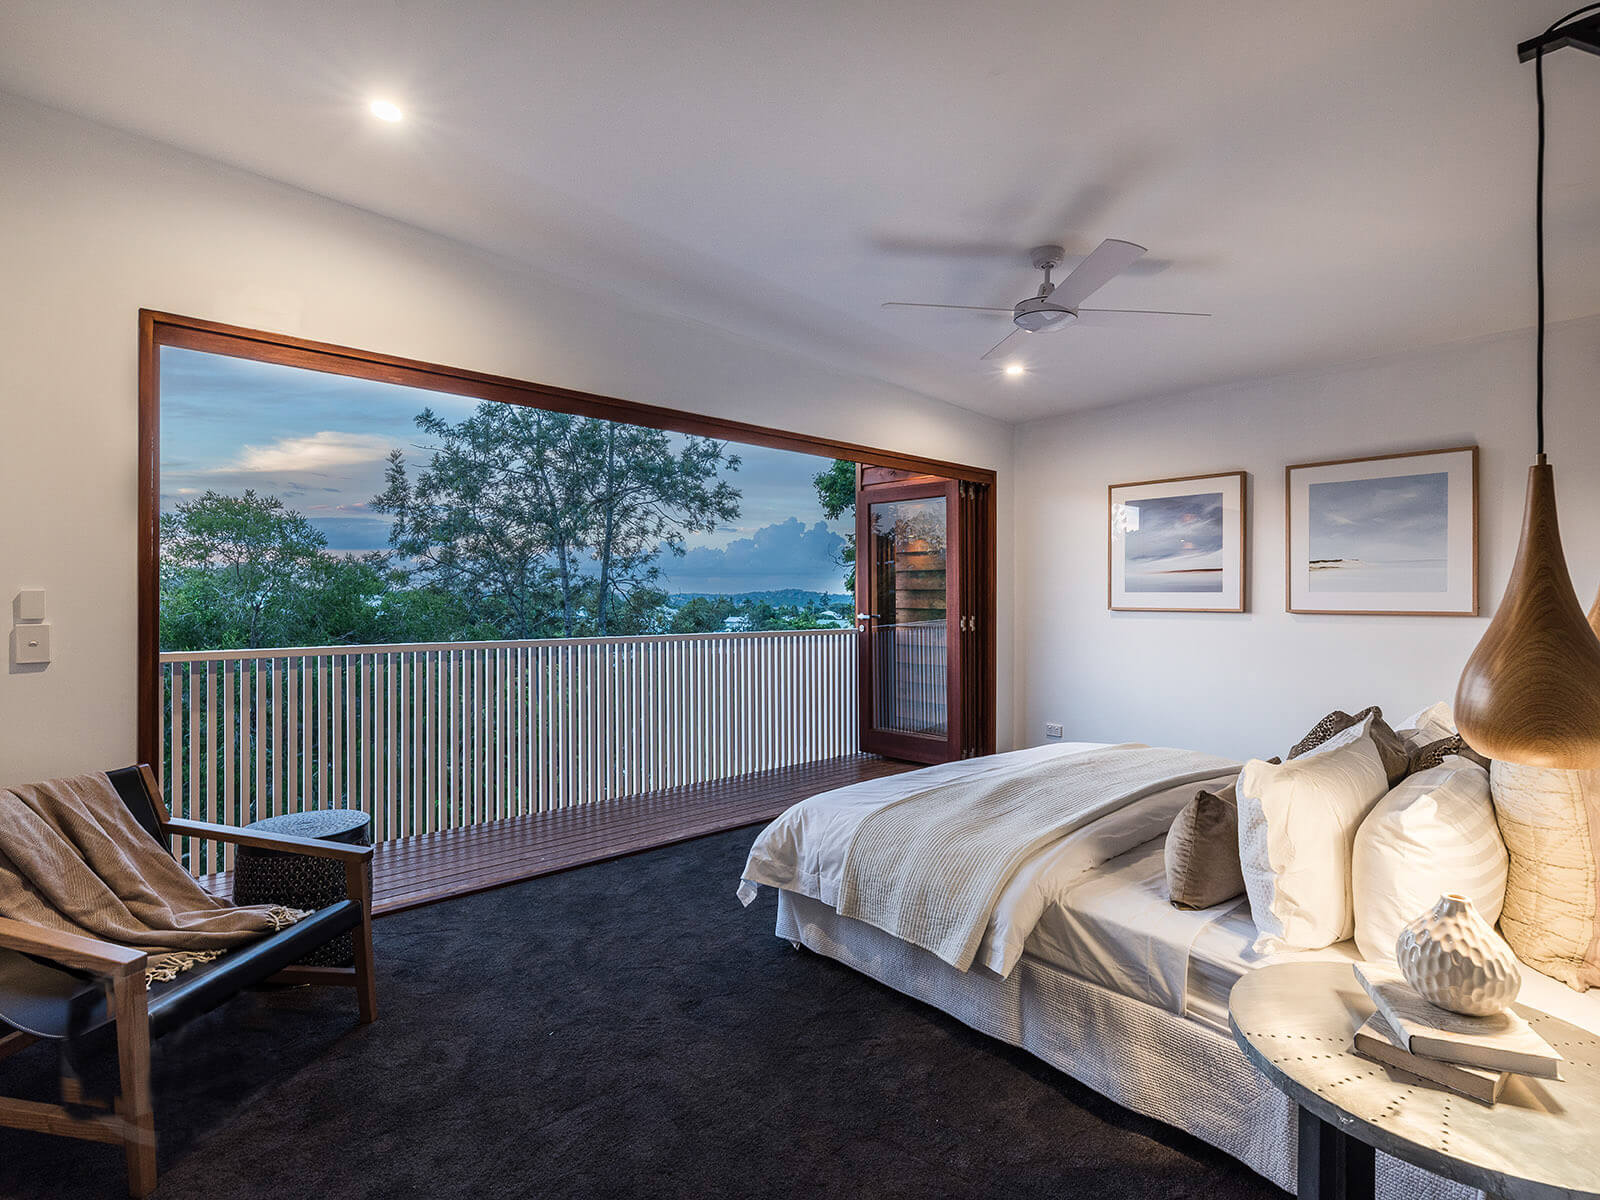 Carpeted bedroom with deck and views